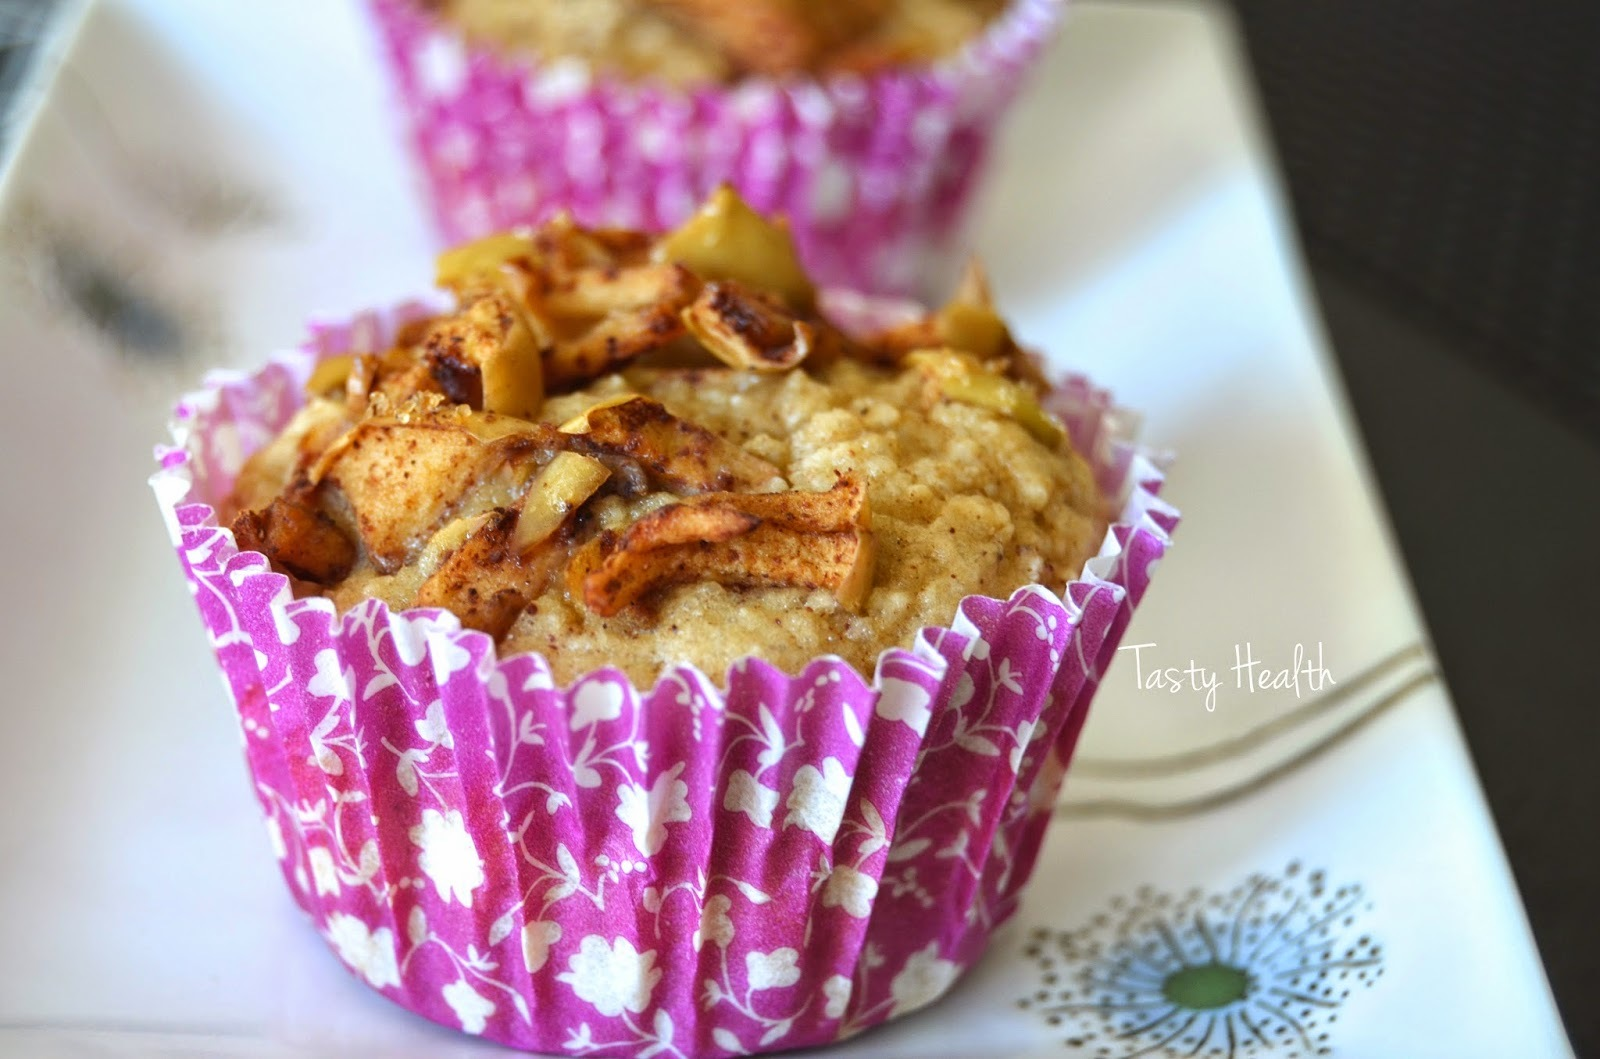 Supersaftiga äpple & kanelmuffins